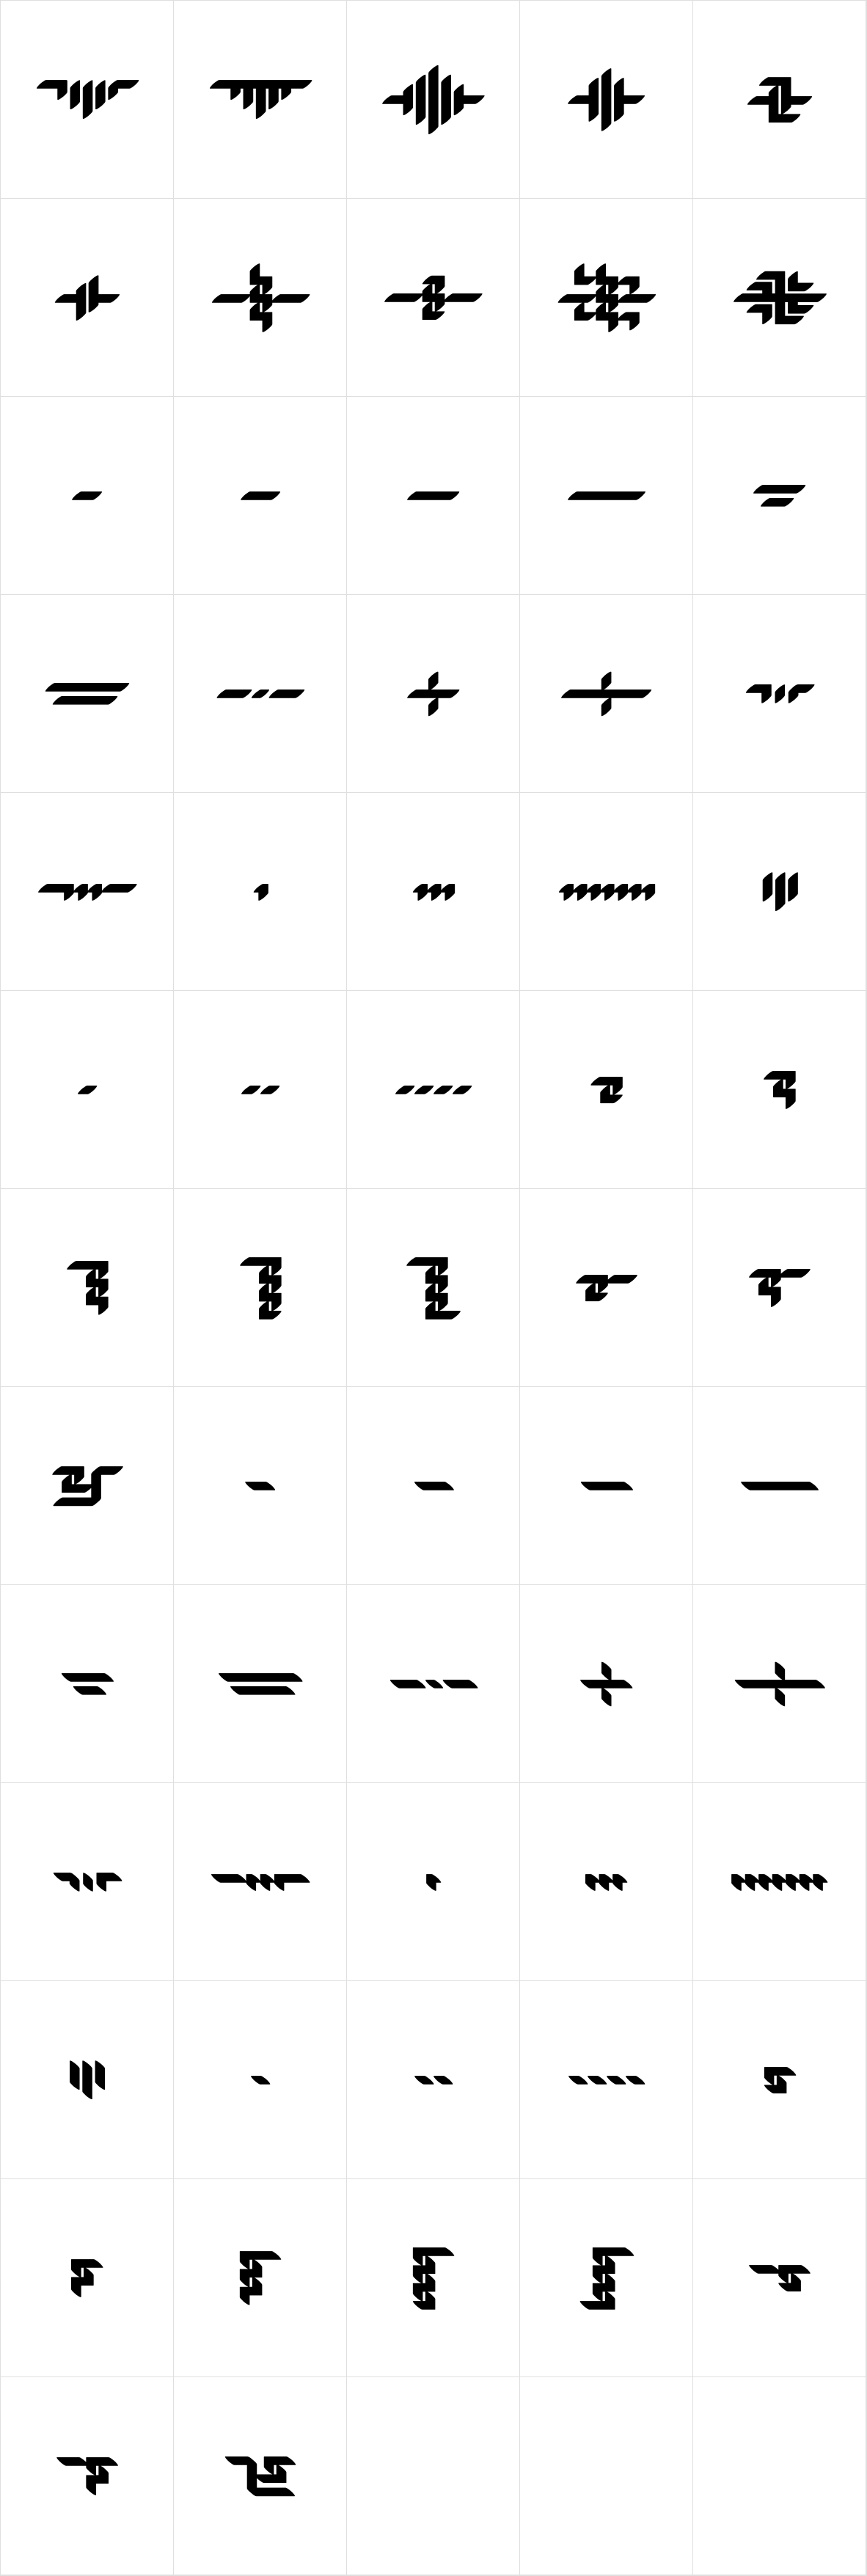 Psalta Ornaments